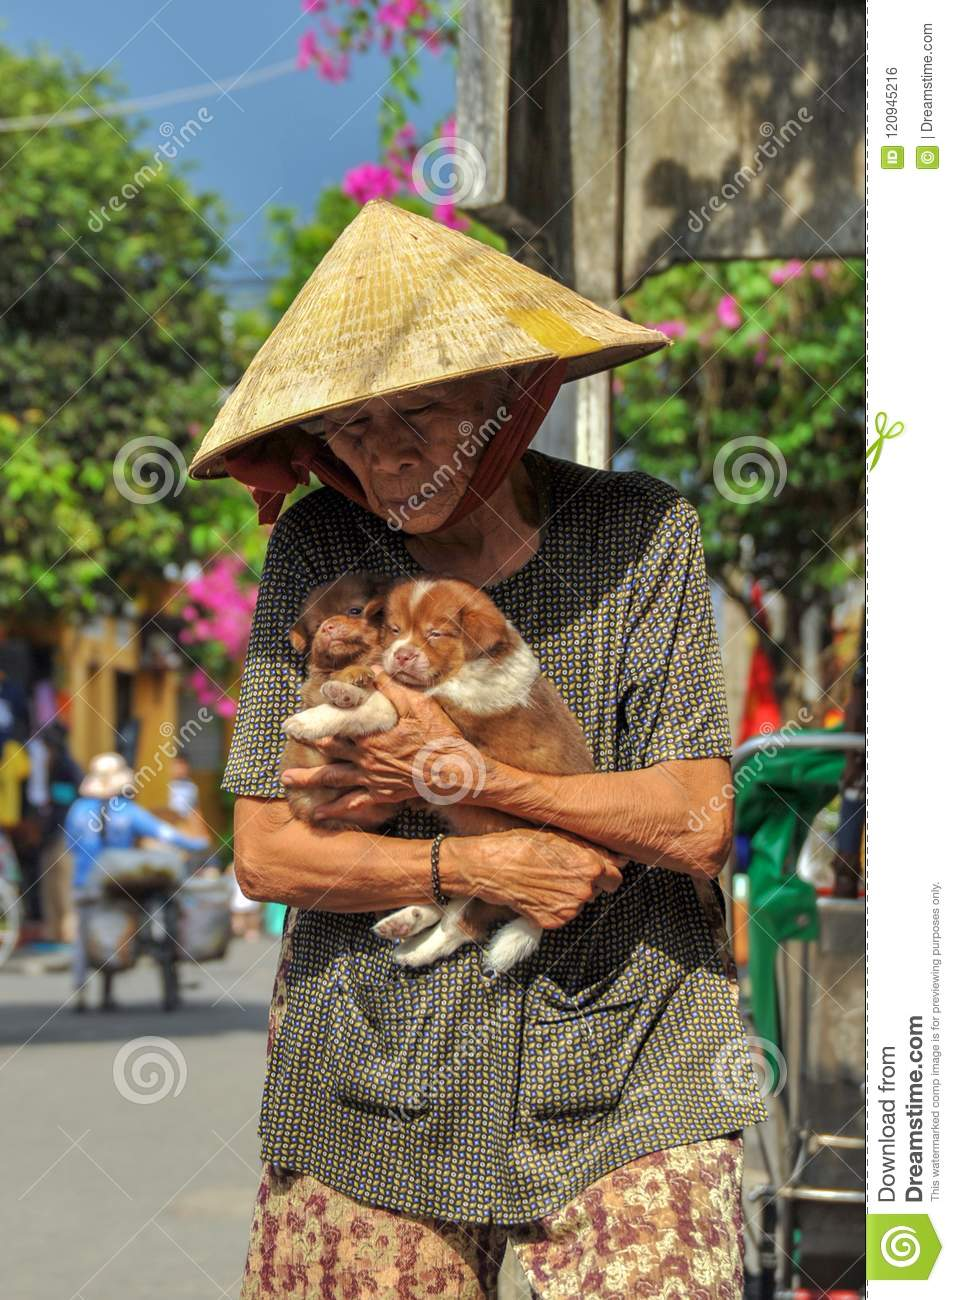 Stick together and help each other in difficulties,Hui An, Vietnam